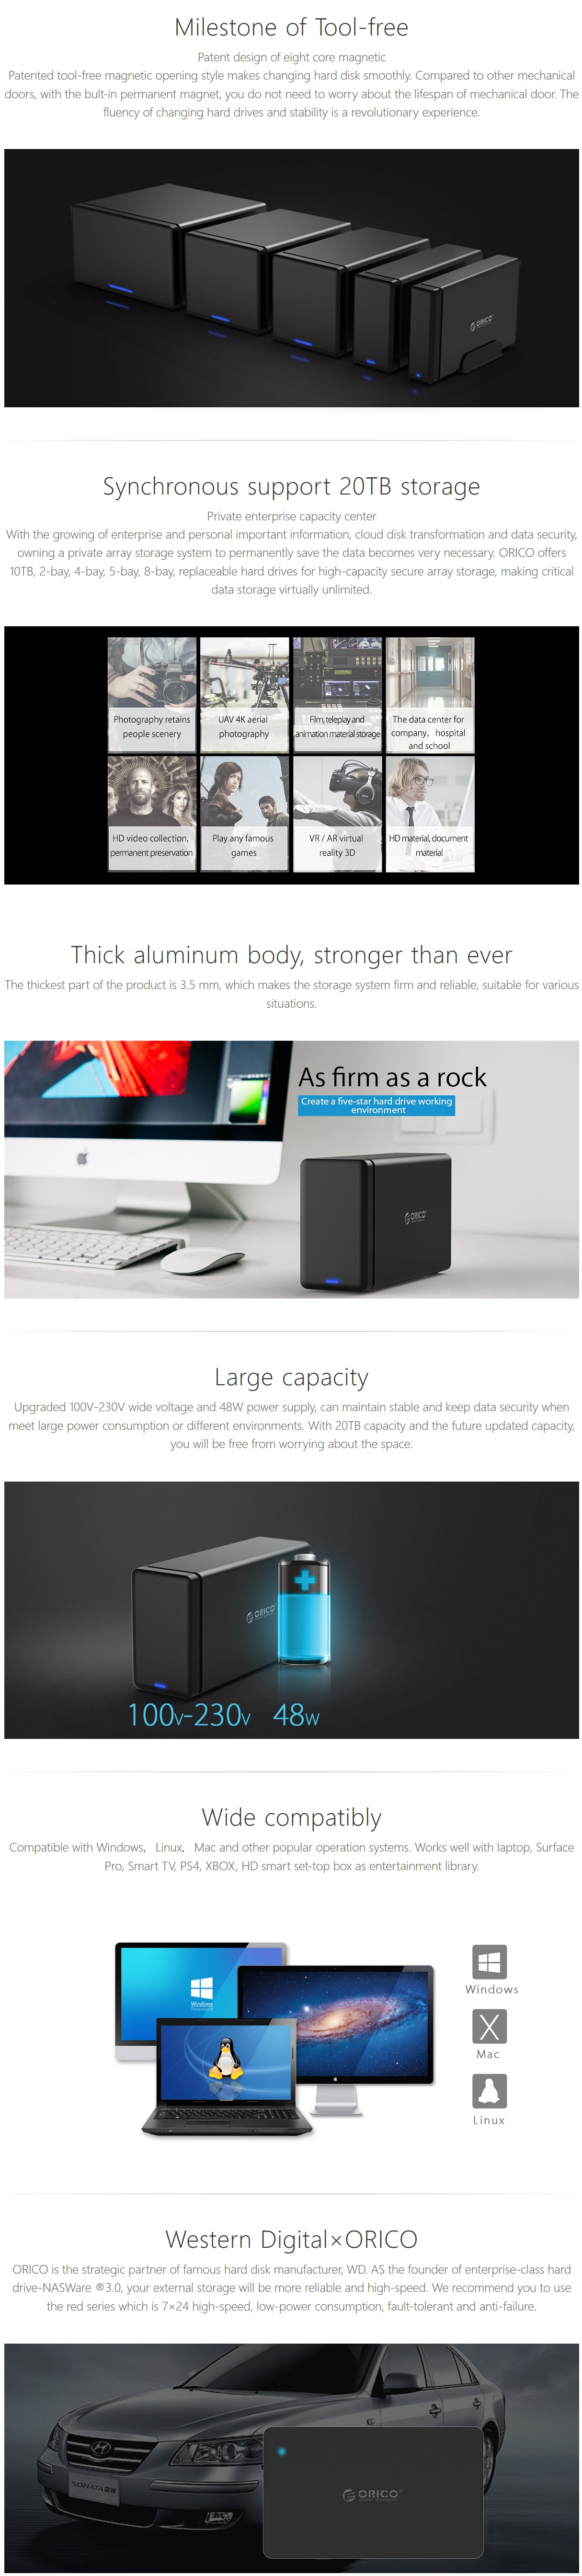 A large marketing image providing additional information about the product ORICO 2 Bay USB3.0 Hard Drive Dock - Additional alt info not provided